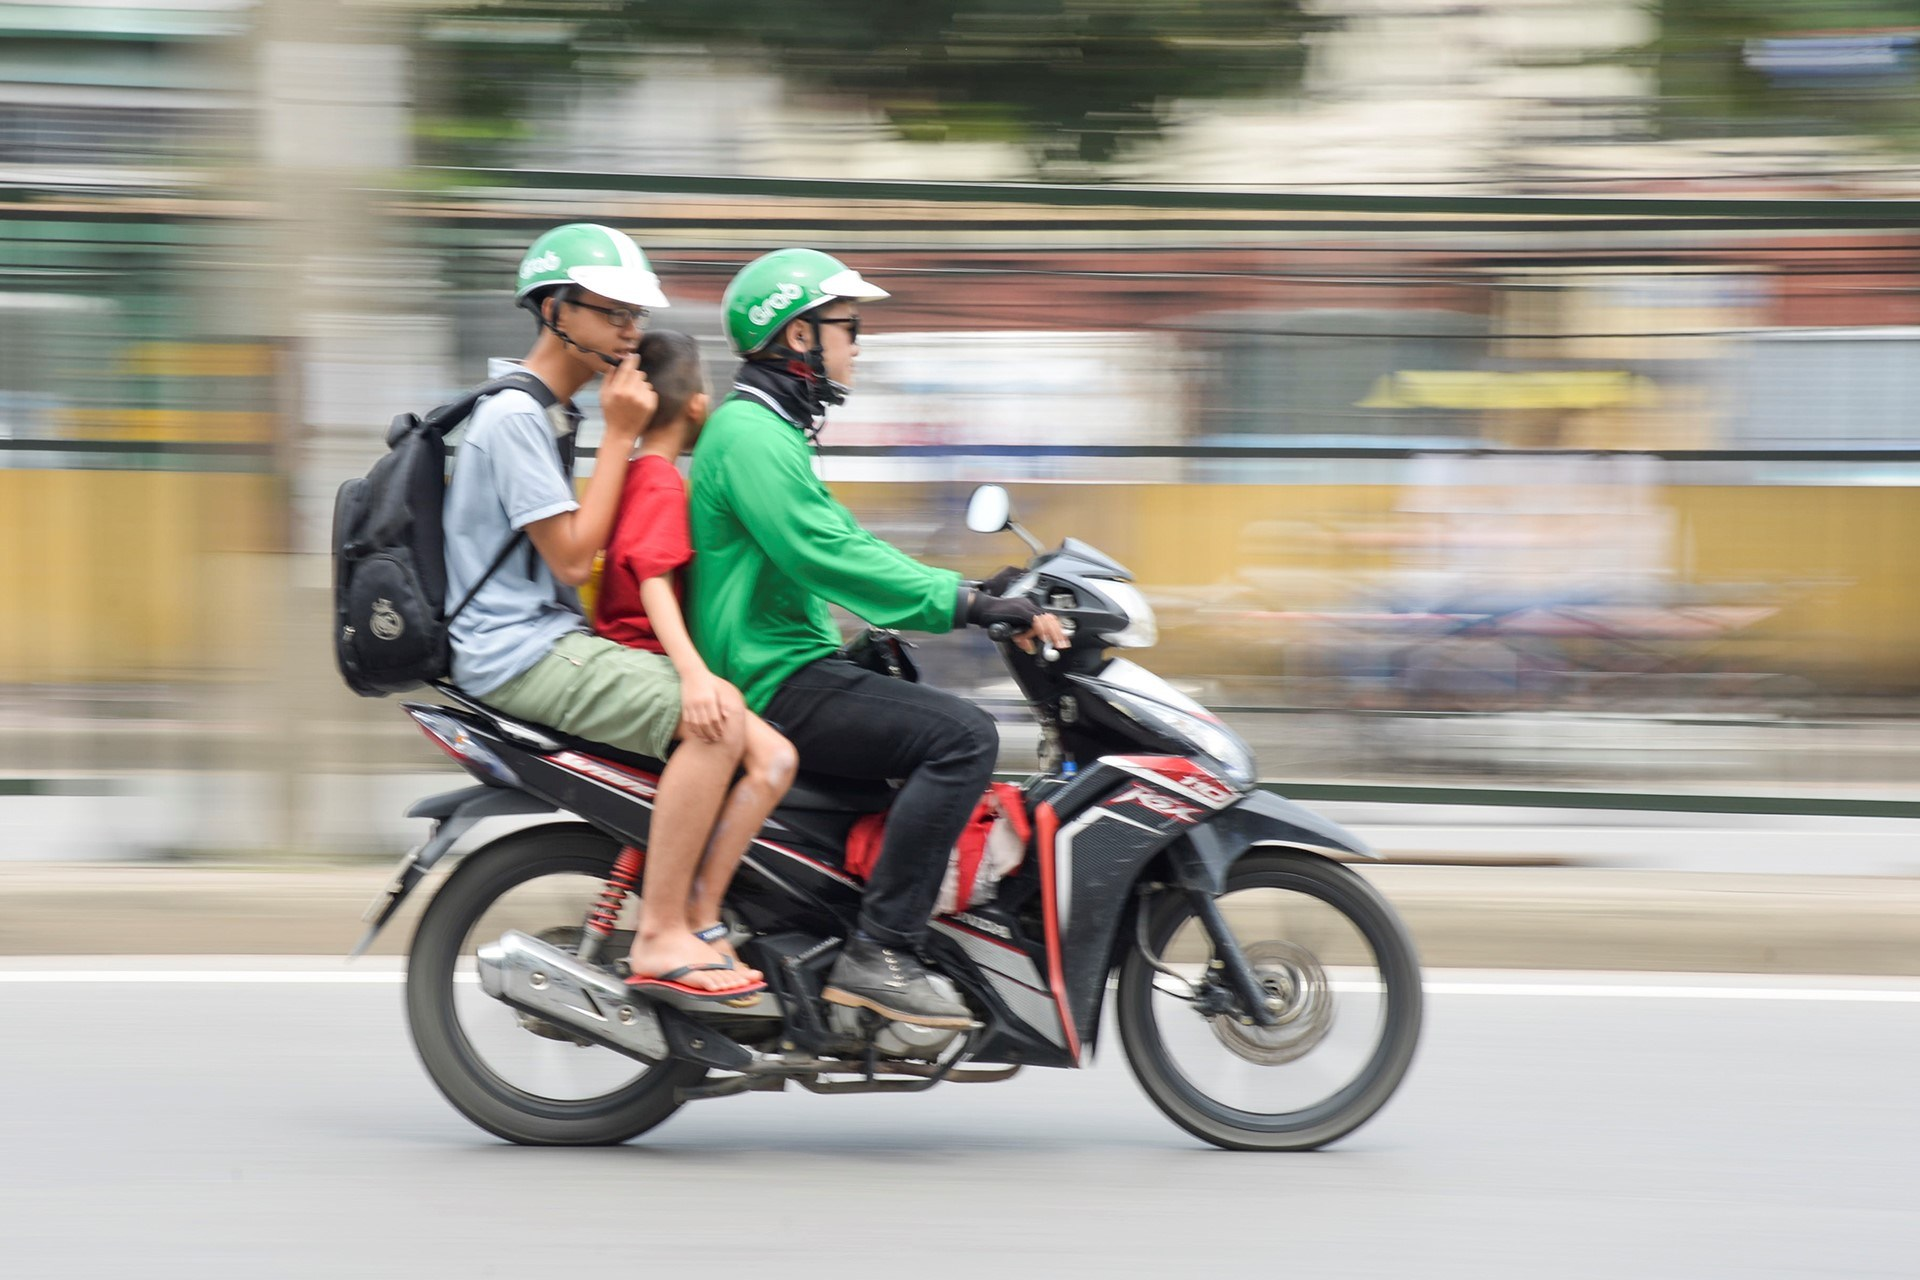 Beside private motorbike, is there any other transportation in Danang?